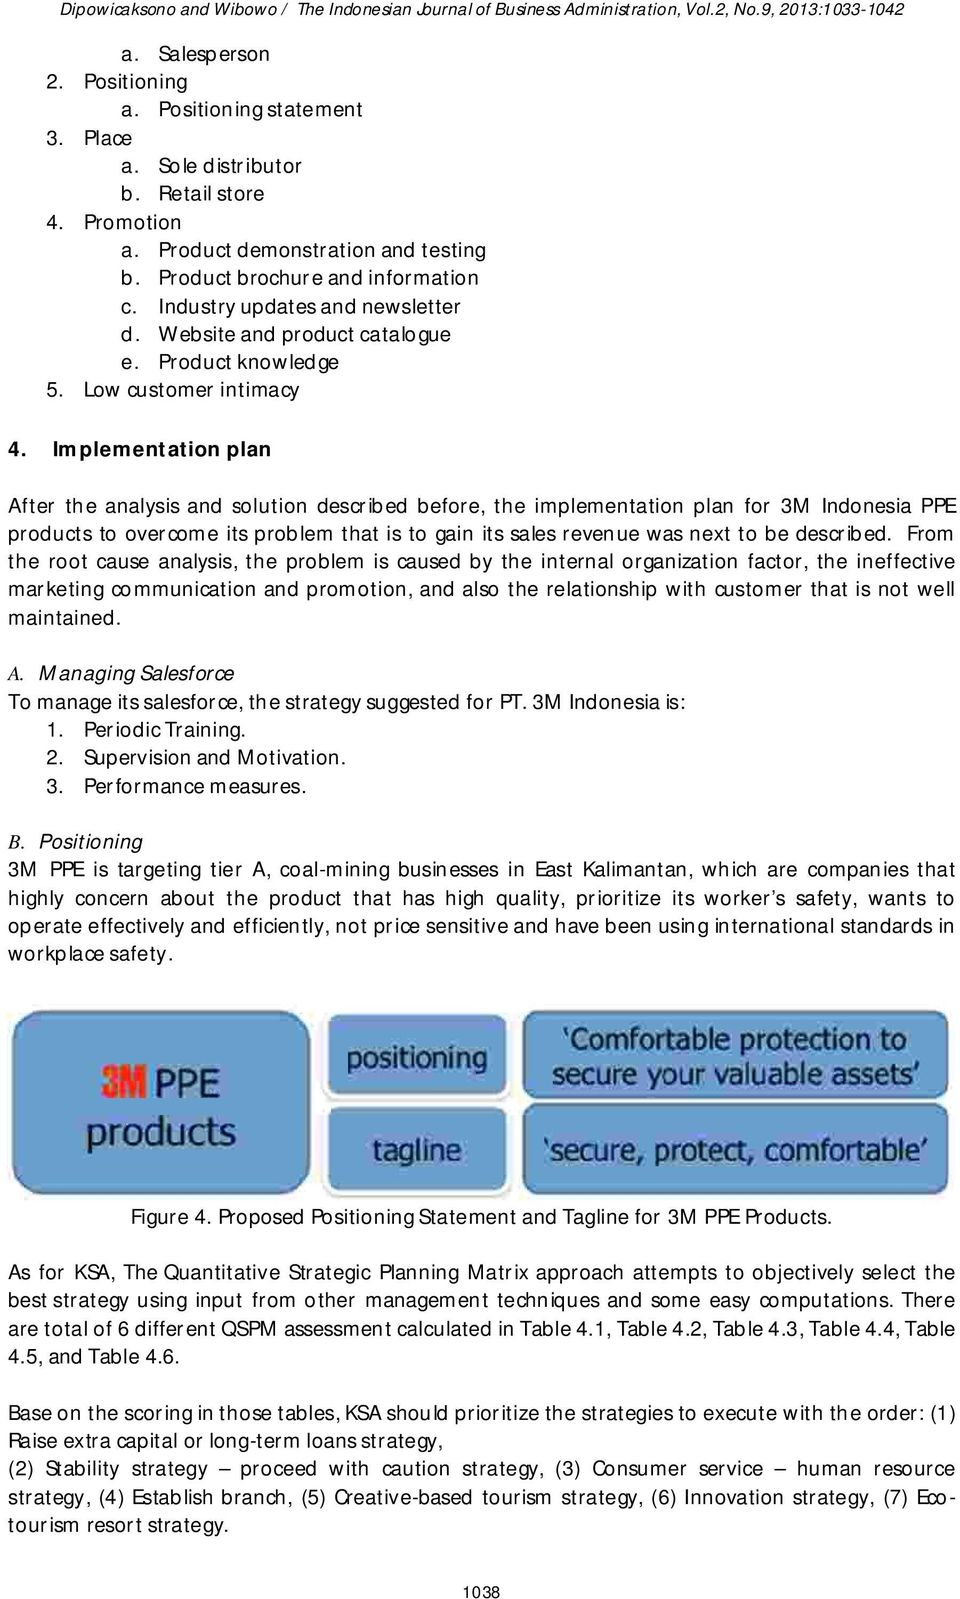 MARKETING STRATEGY FOR 3M PPE PRODUCTS AT COAL MINING IN